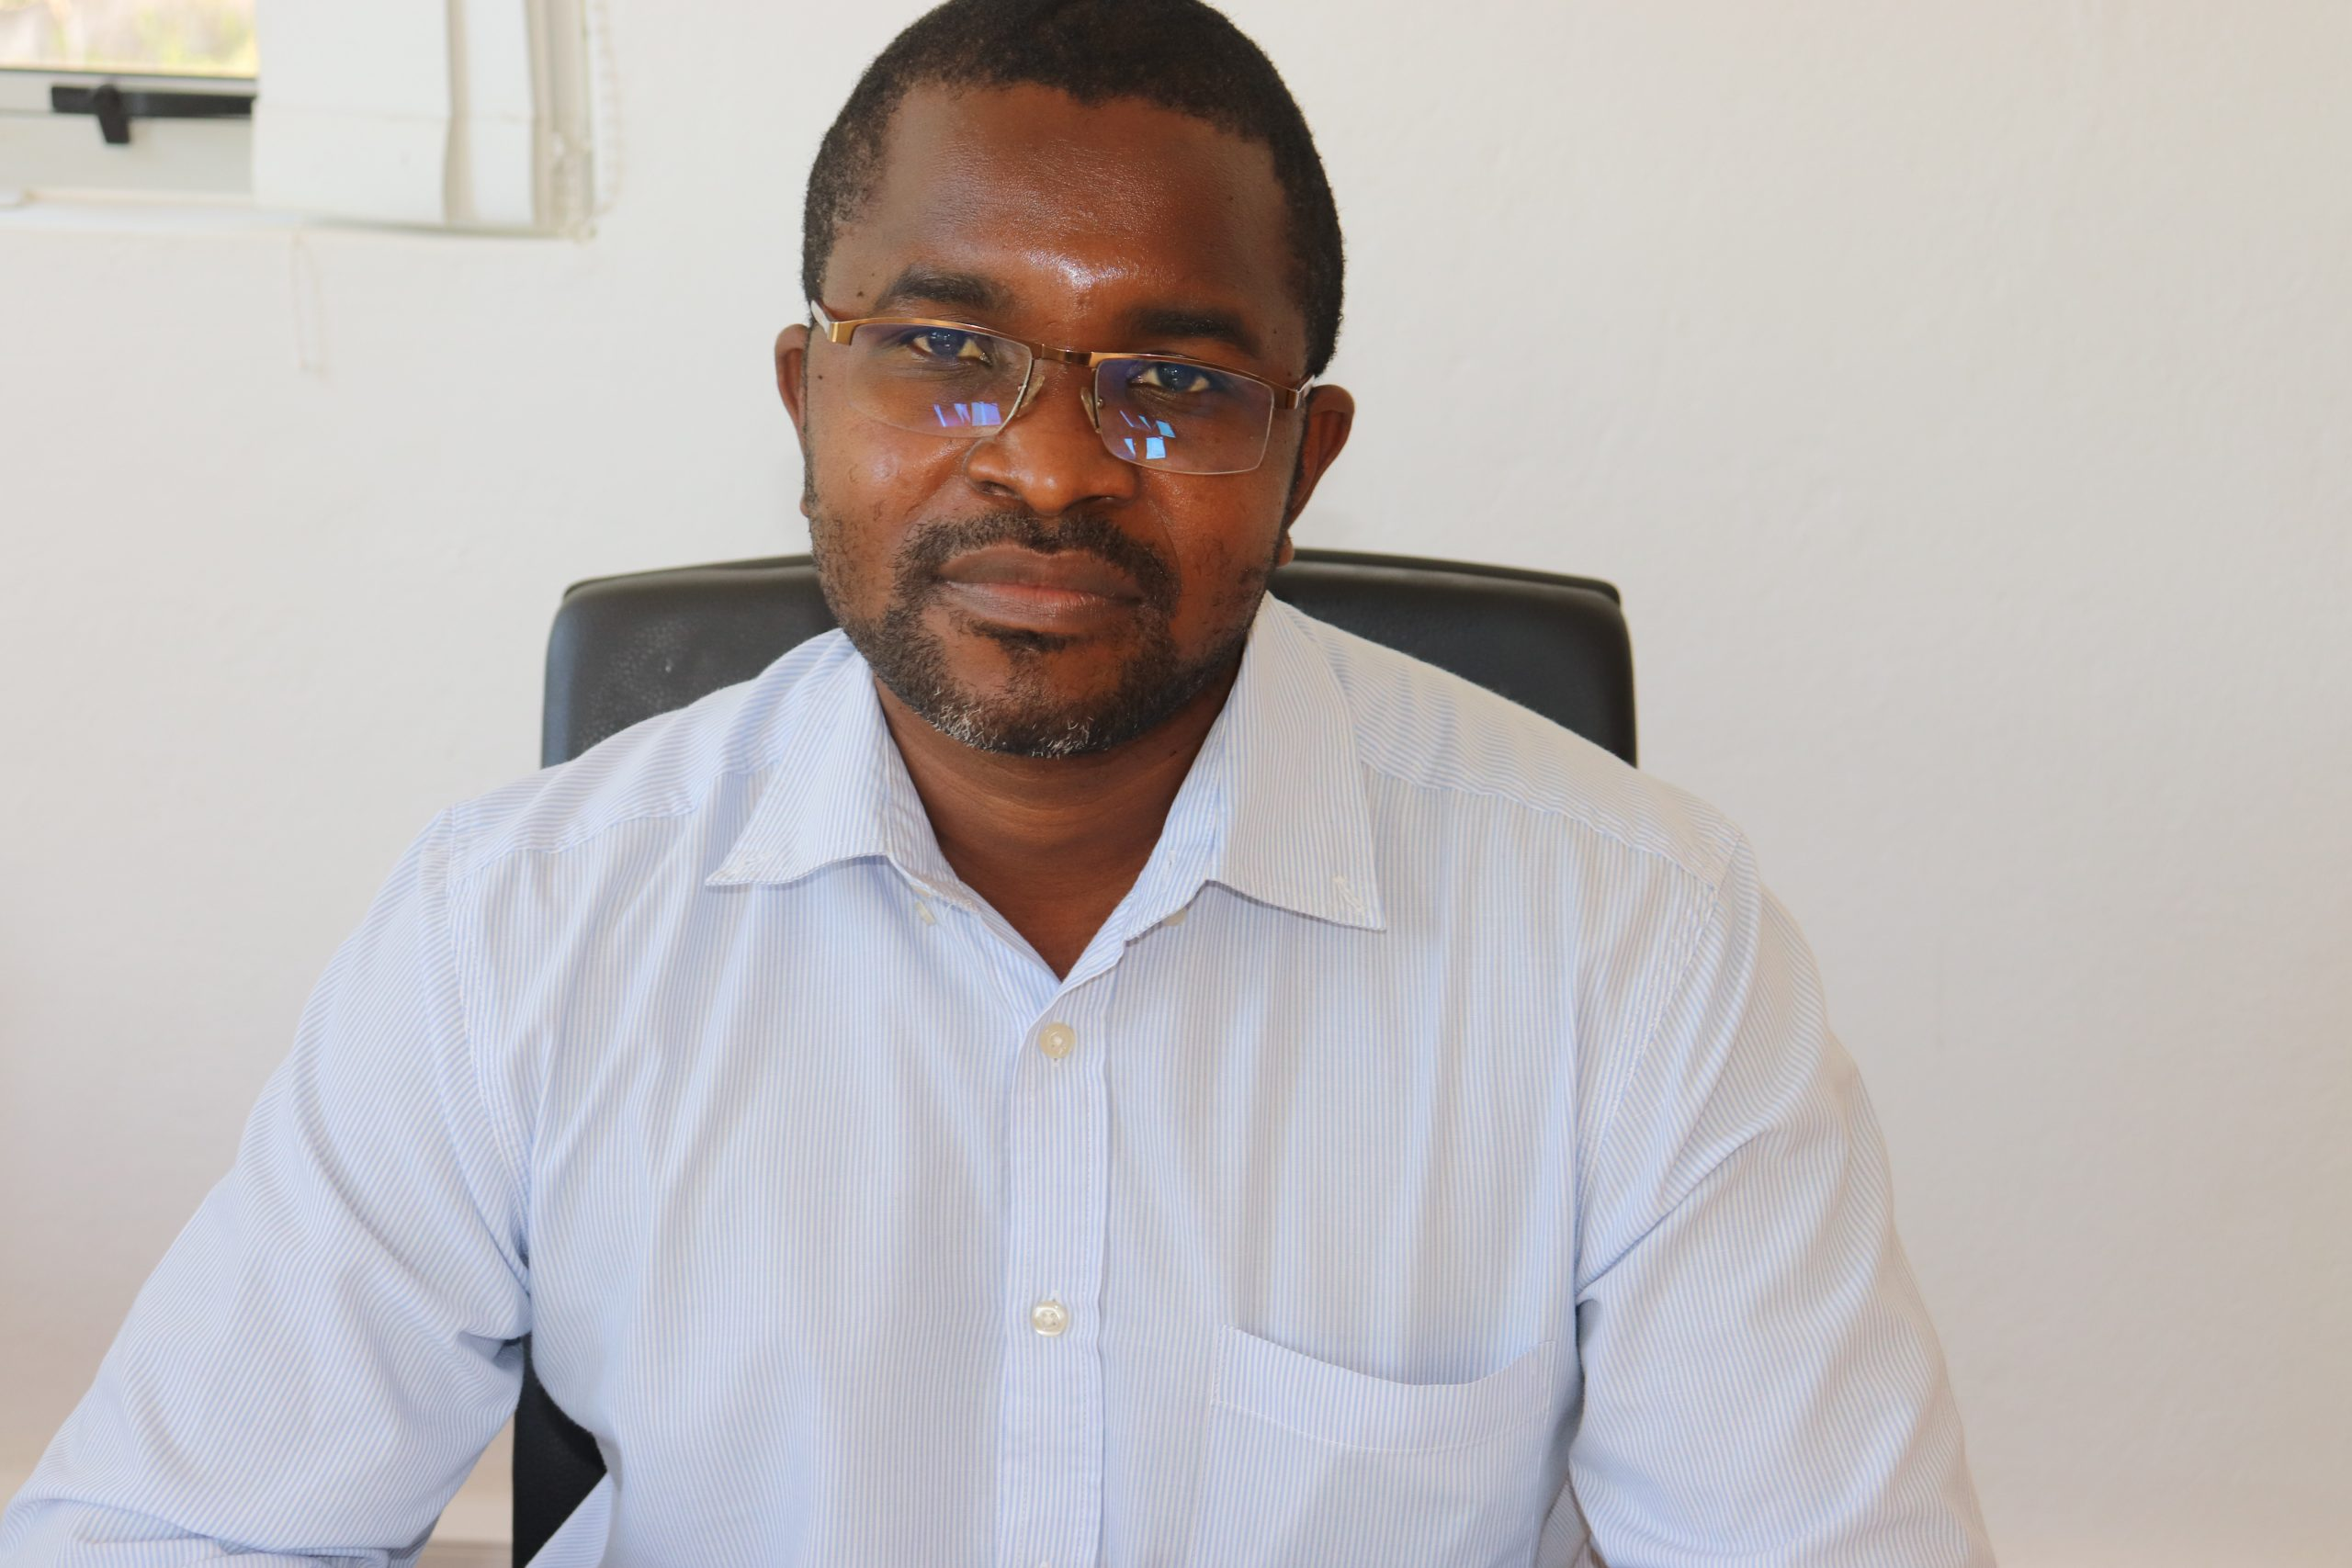 Augusto Jaime is the program director for Catalisa, a TechnoServe program promoting economic opportunities for youth in Cabo Delgado, Mozambique.